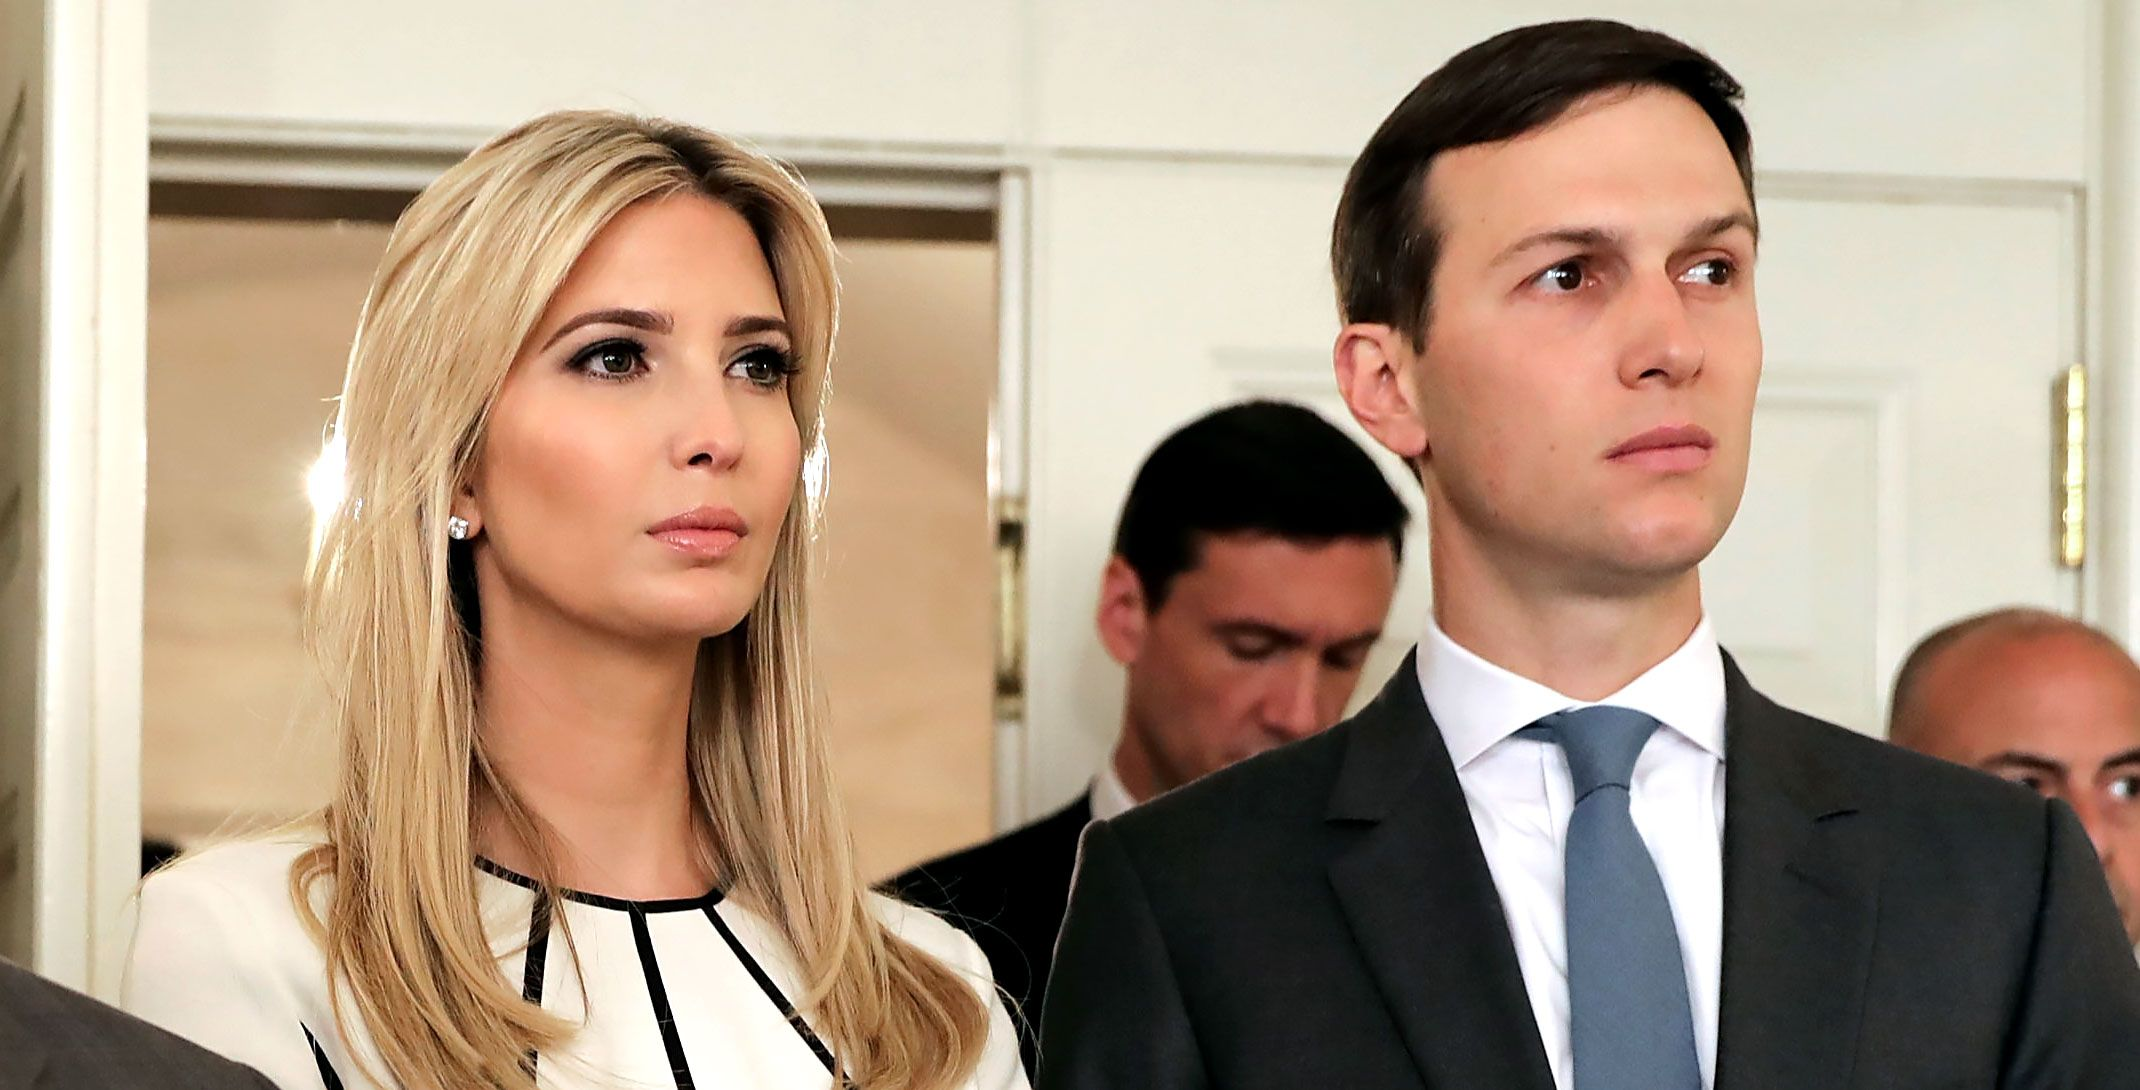 https://hips.hearstapps.com/hmg-prod.s3.amazonaws.com/images/ivanka-jared-01-1500481356.jpeg?crop=1xw:1xh;center,top&resize=768:*